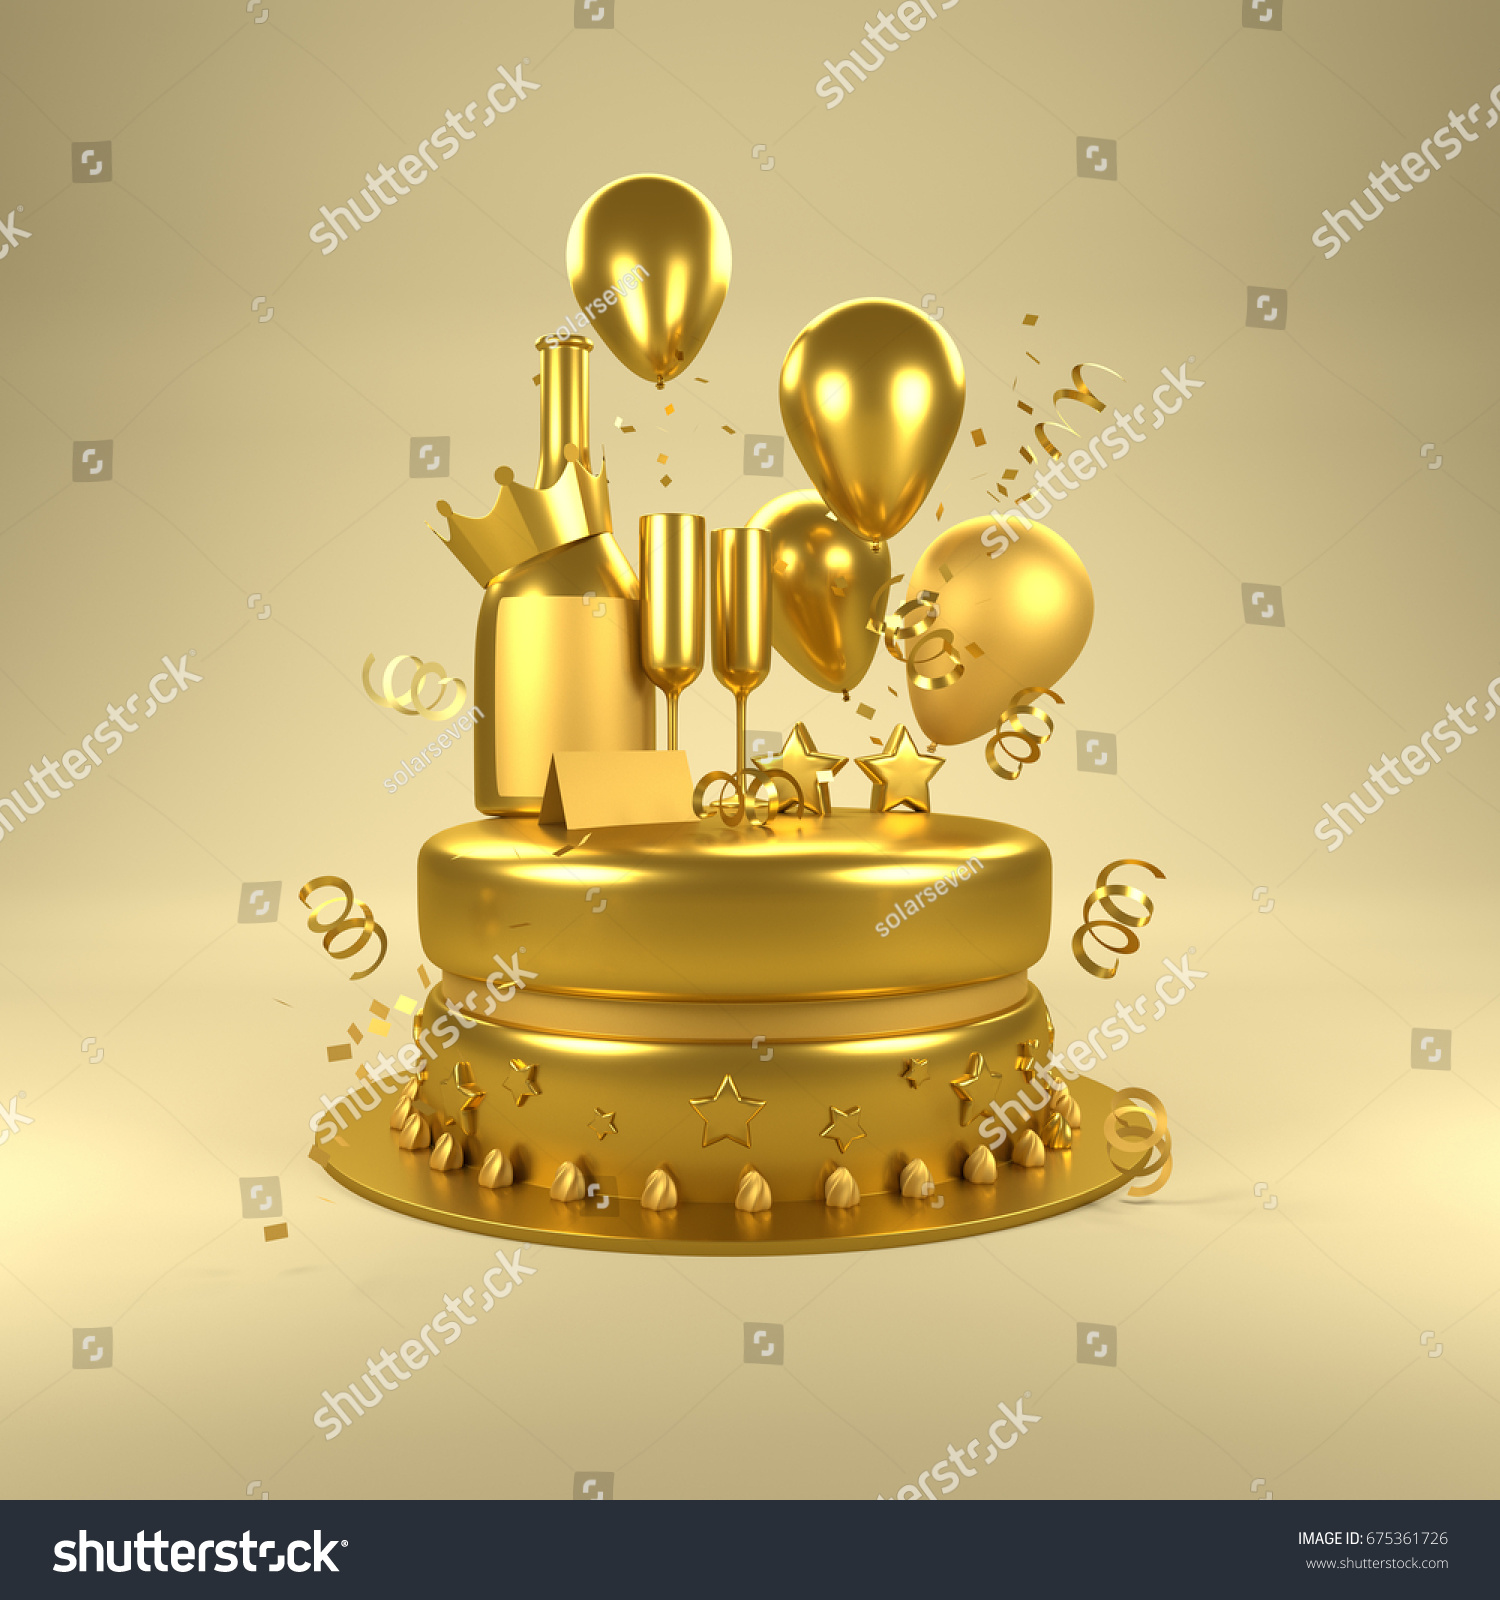 Gold Birthday Surprise Birthday Celebrations Gold Stock Illustration